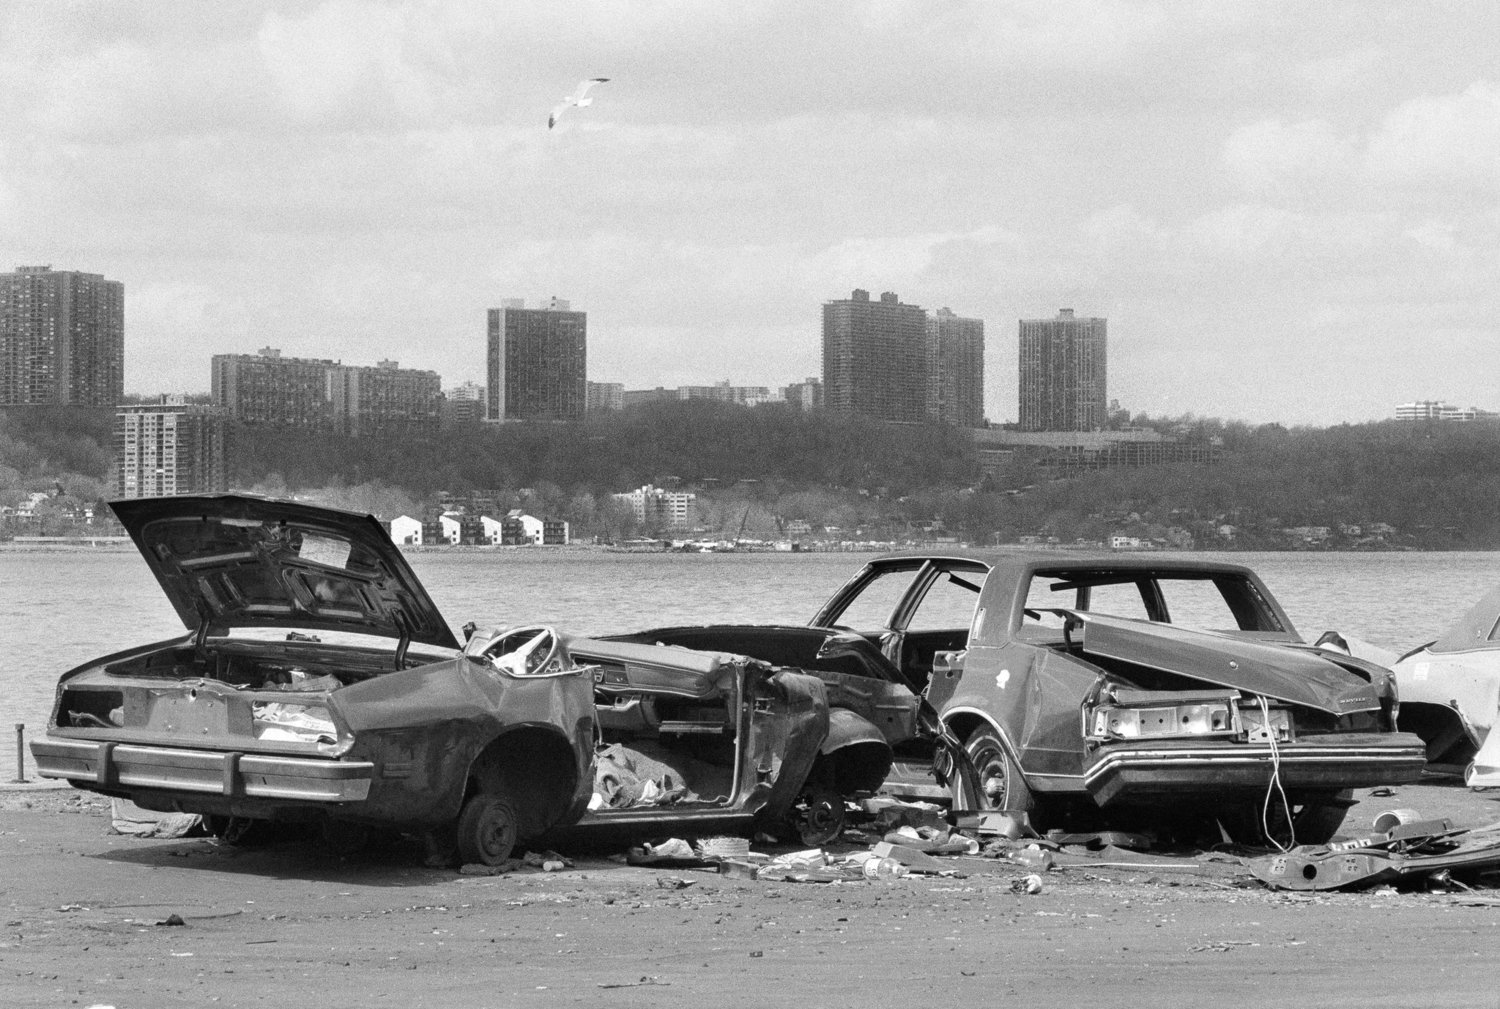 Abandoned cars in the Riverside Park area. April 9, 1985.